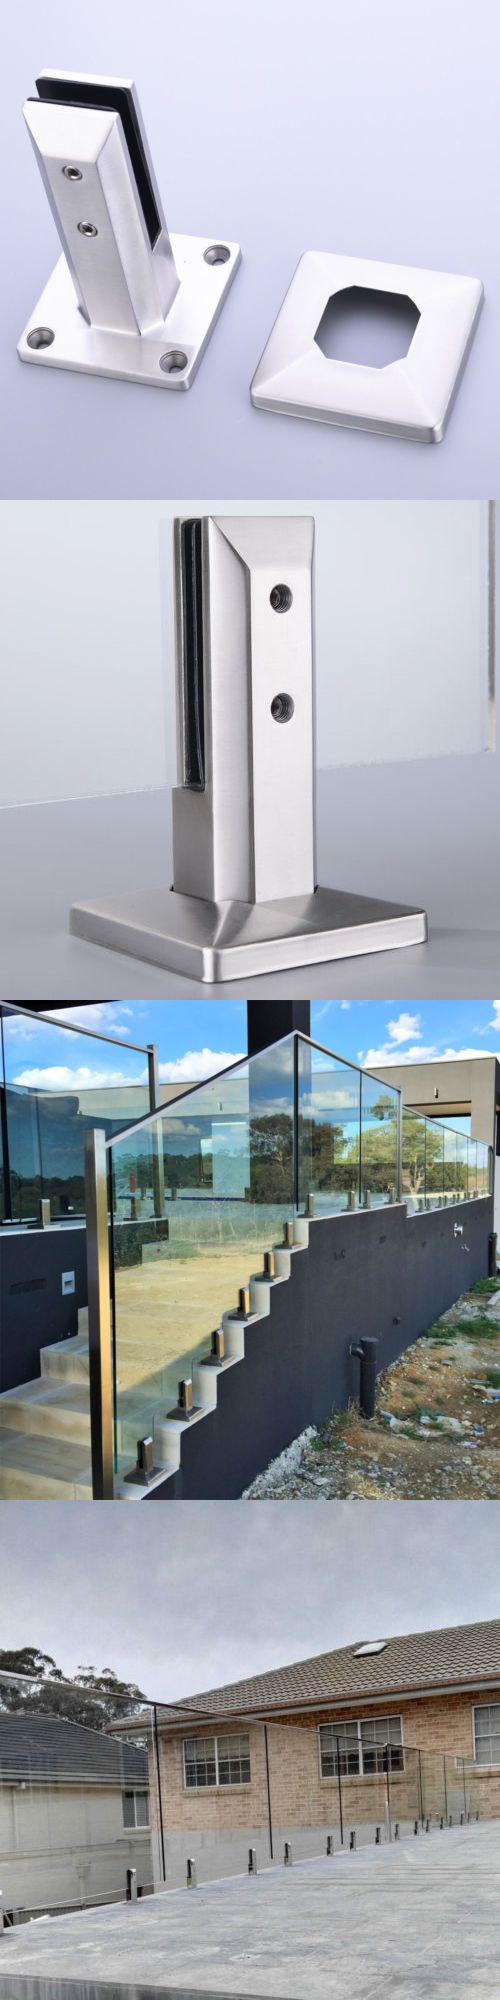 Railings 139950 Stainless Steel Glass Spigot Balustrade Post Pool Fence Stair Railing Buy It Now Only 49 55 On Ebay Balcony Pool Railing Stairs